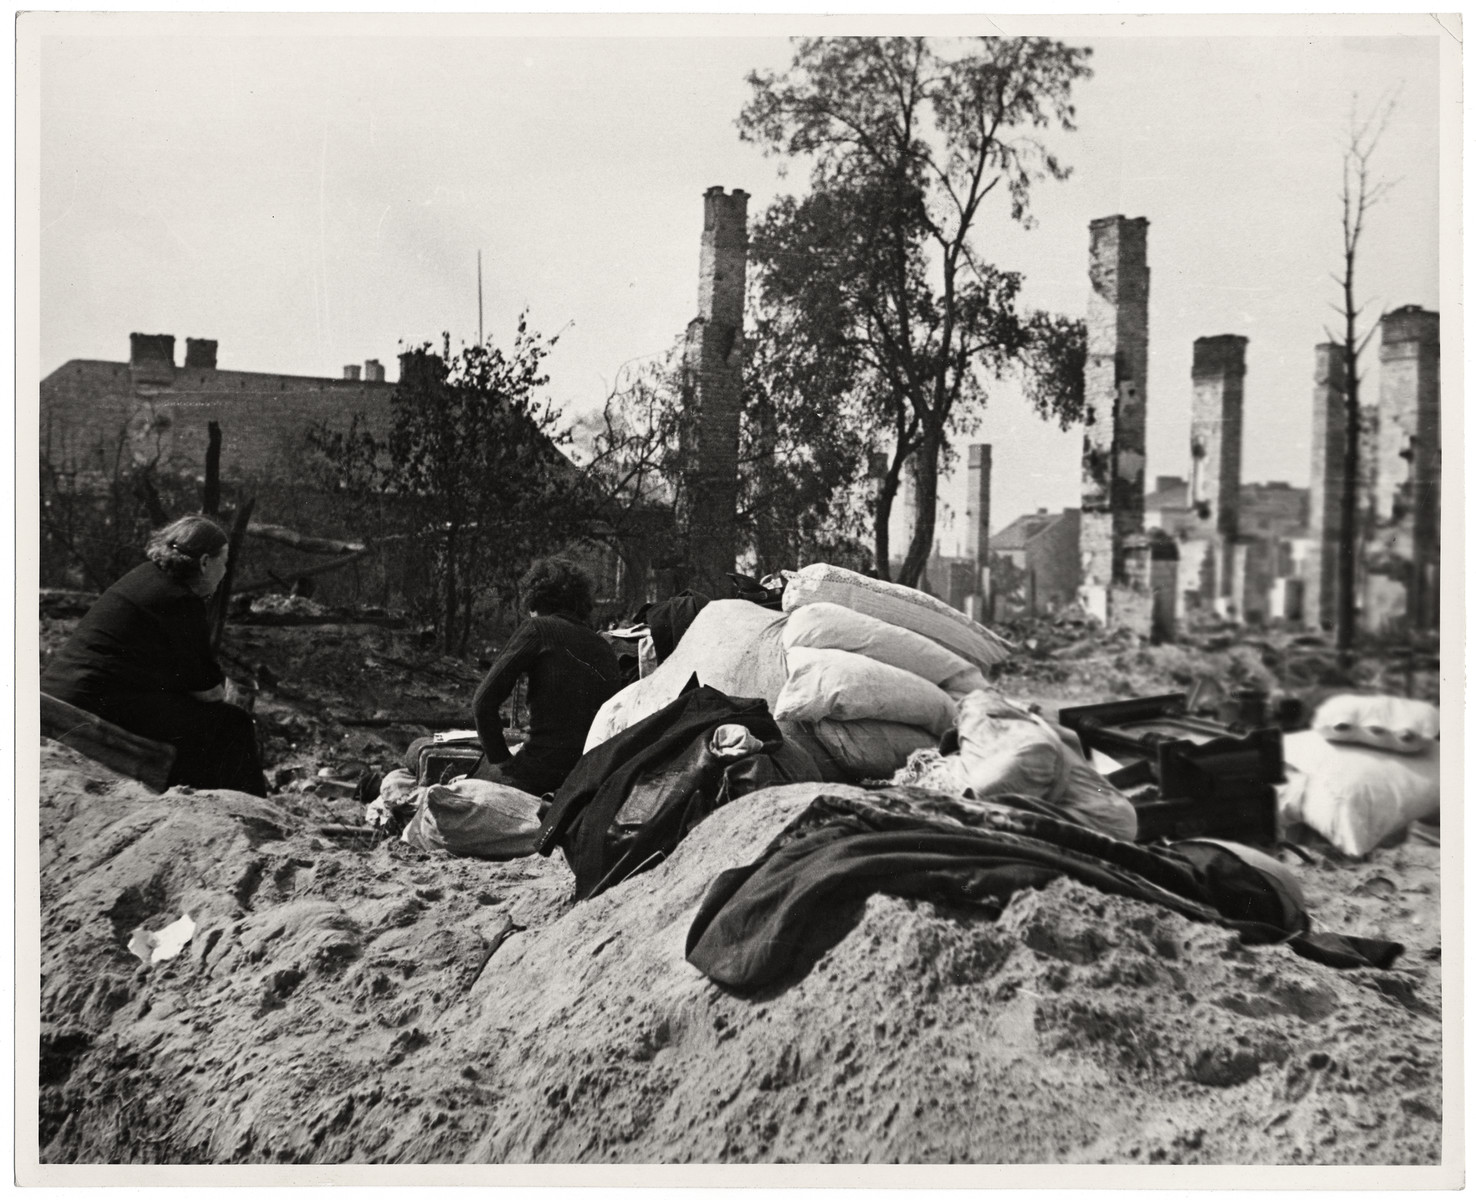 Two women sit amidst the ruins of their homes in Warsaw with a pile of bedding they were able to save.